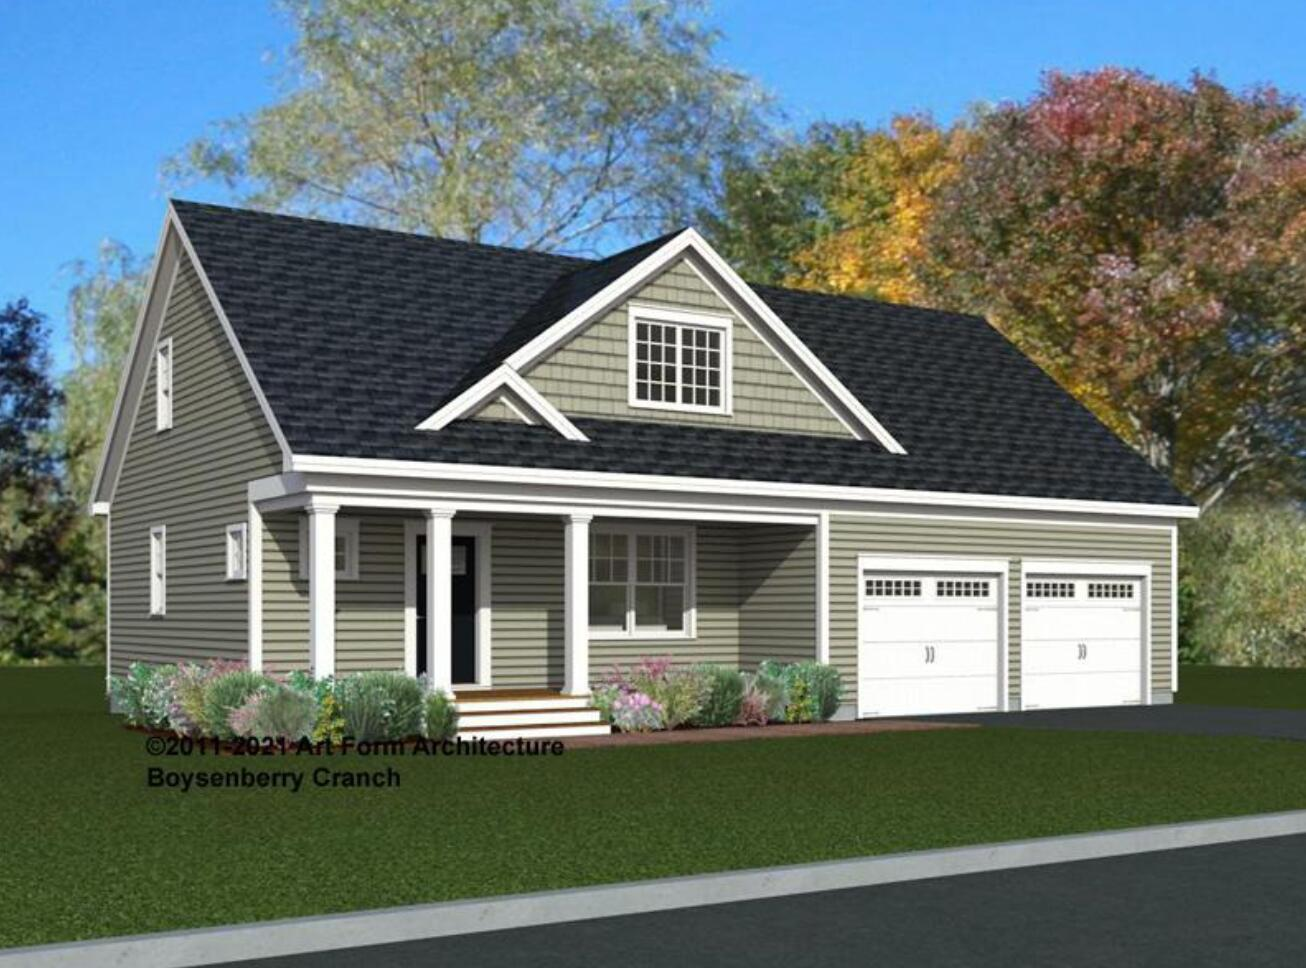 Main image for MLS listing 1486939